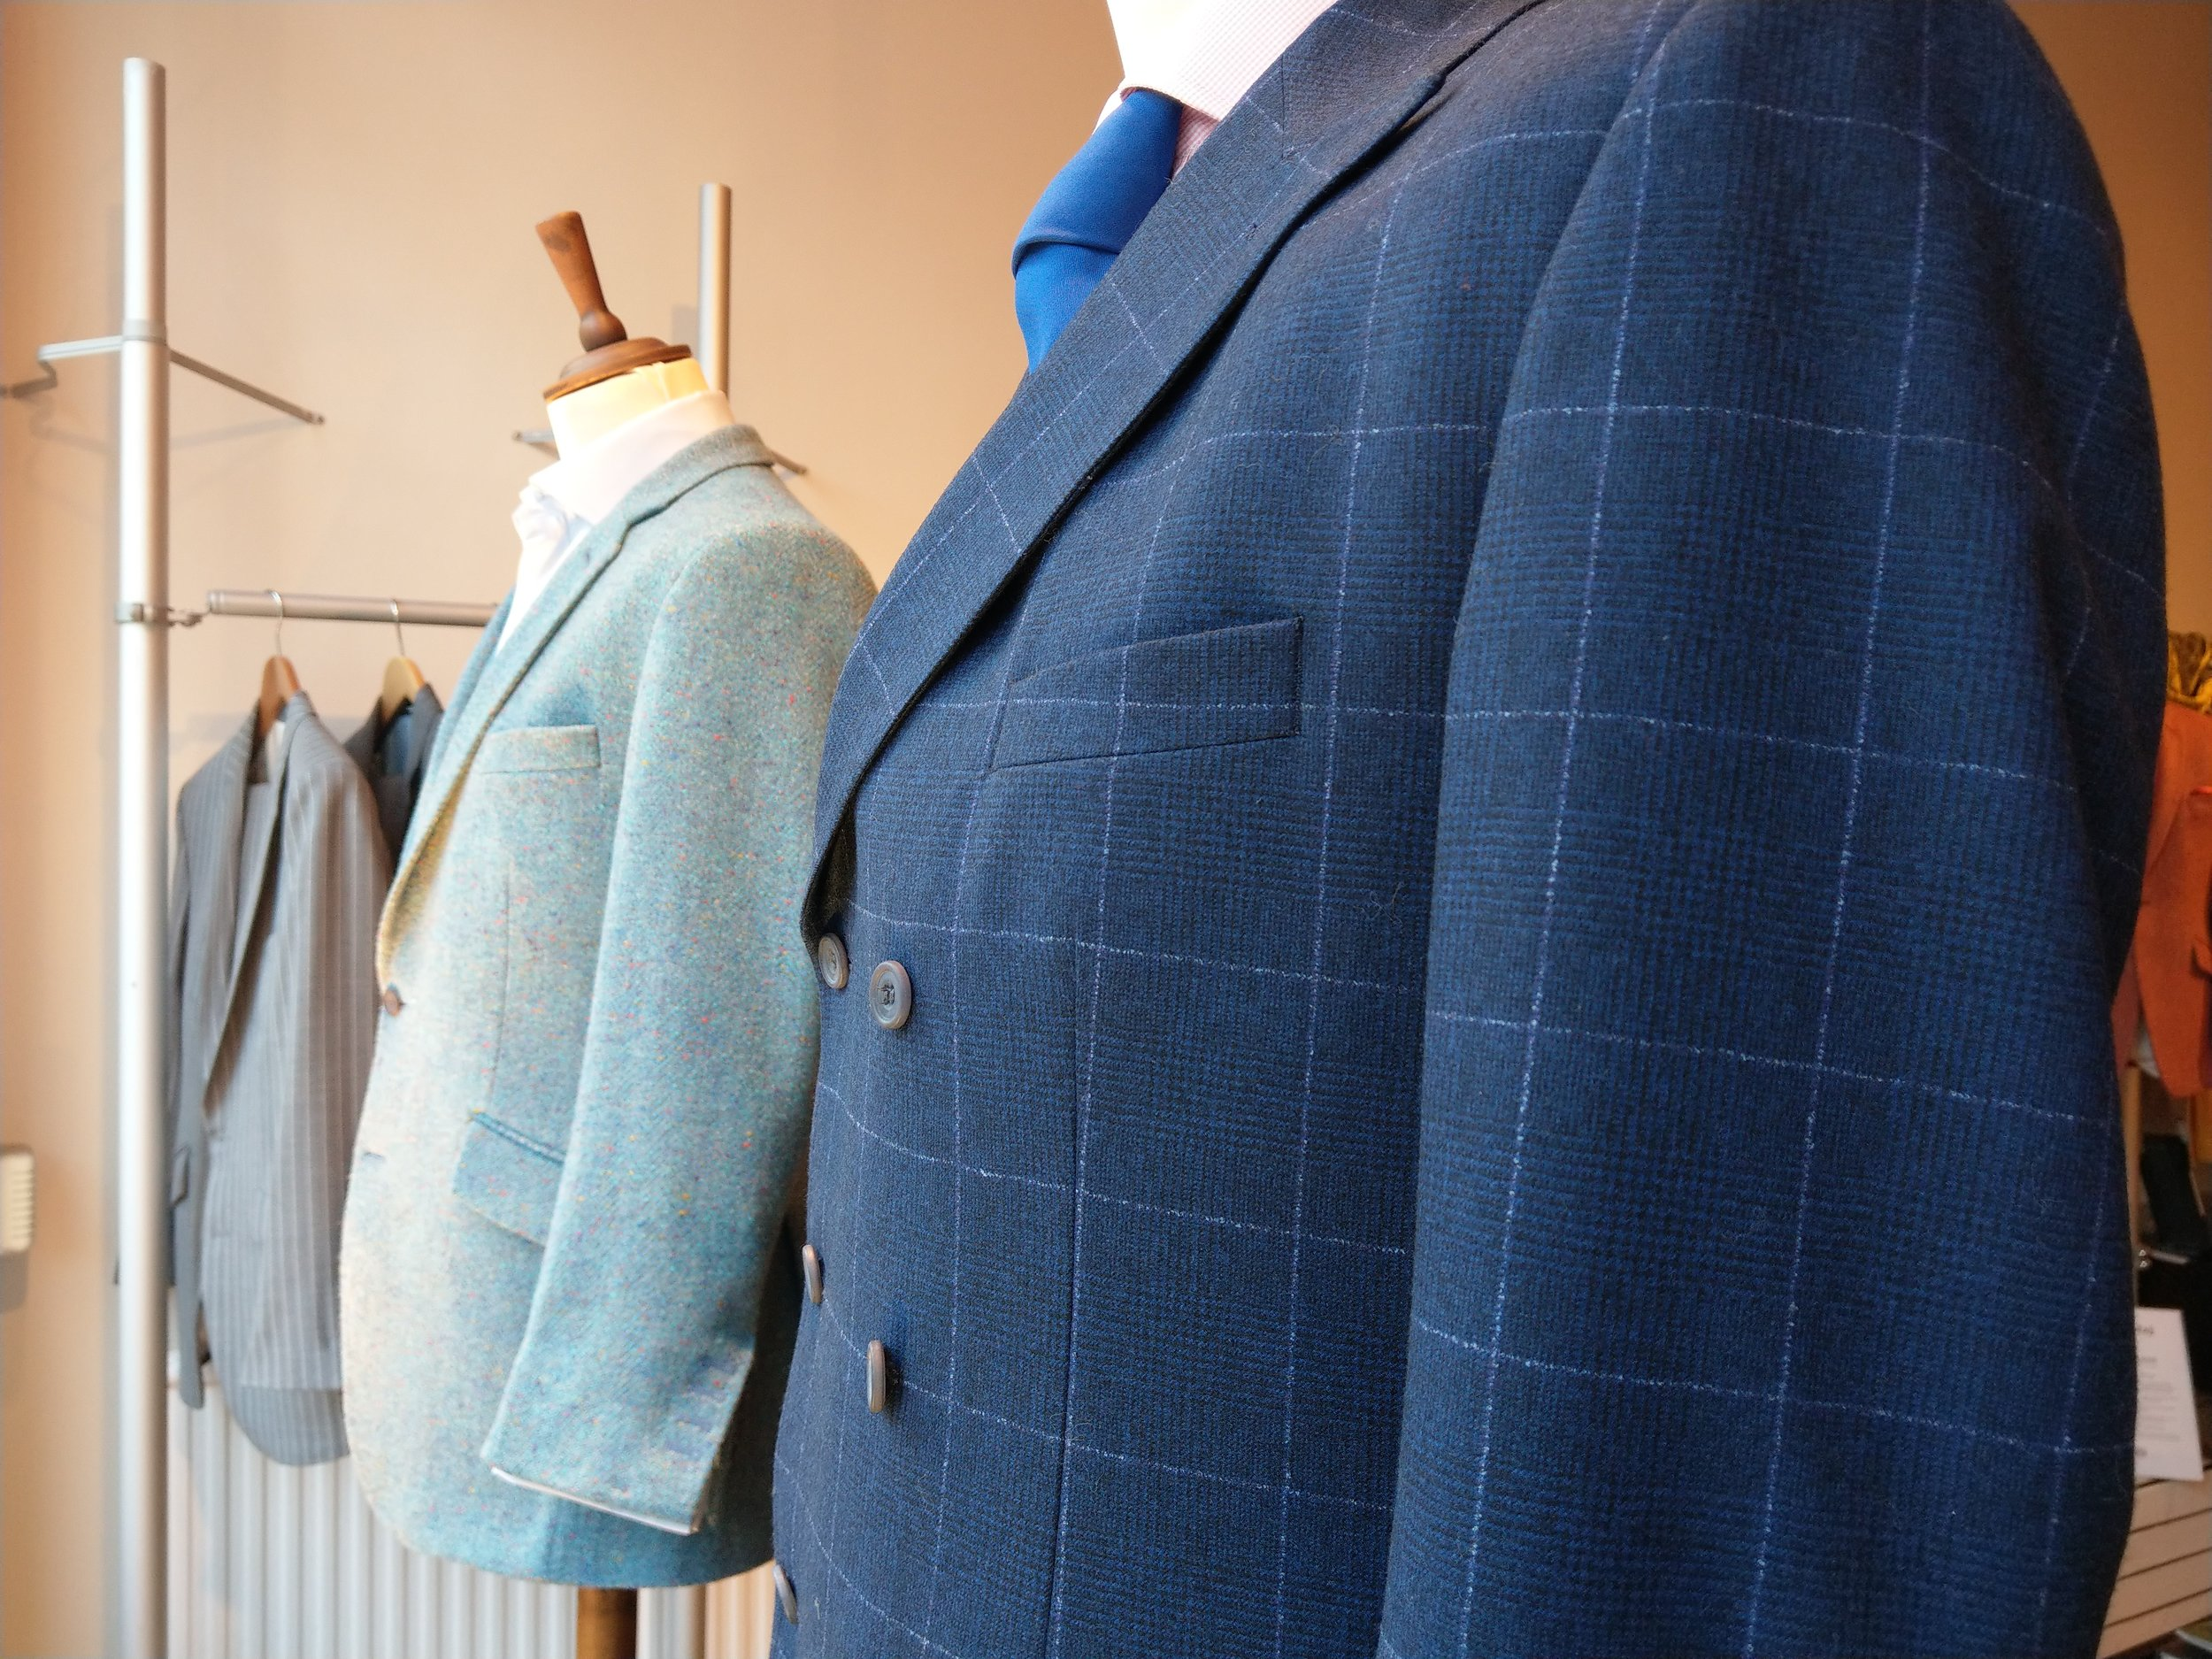 teal-woven-bone-tweed-dormeuil-flannel-suit-made-uk-british.jpg